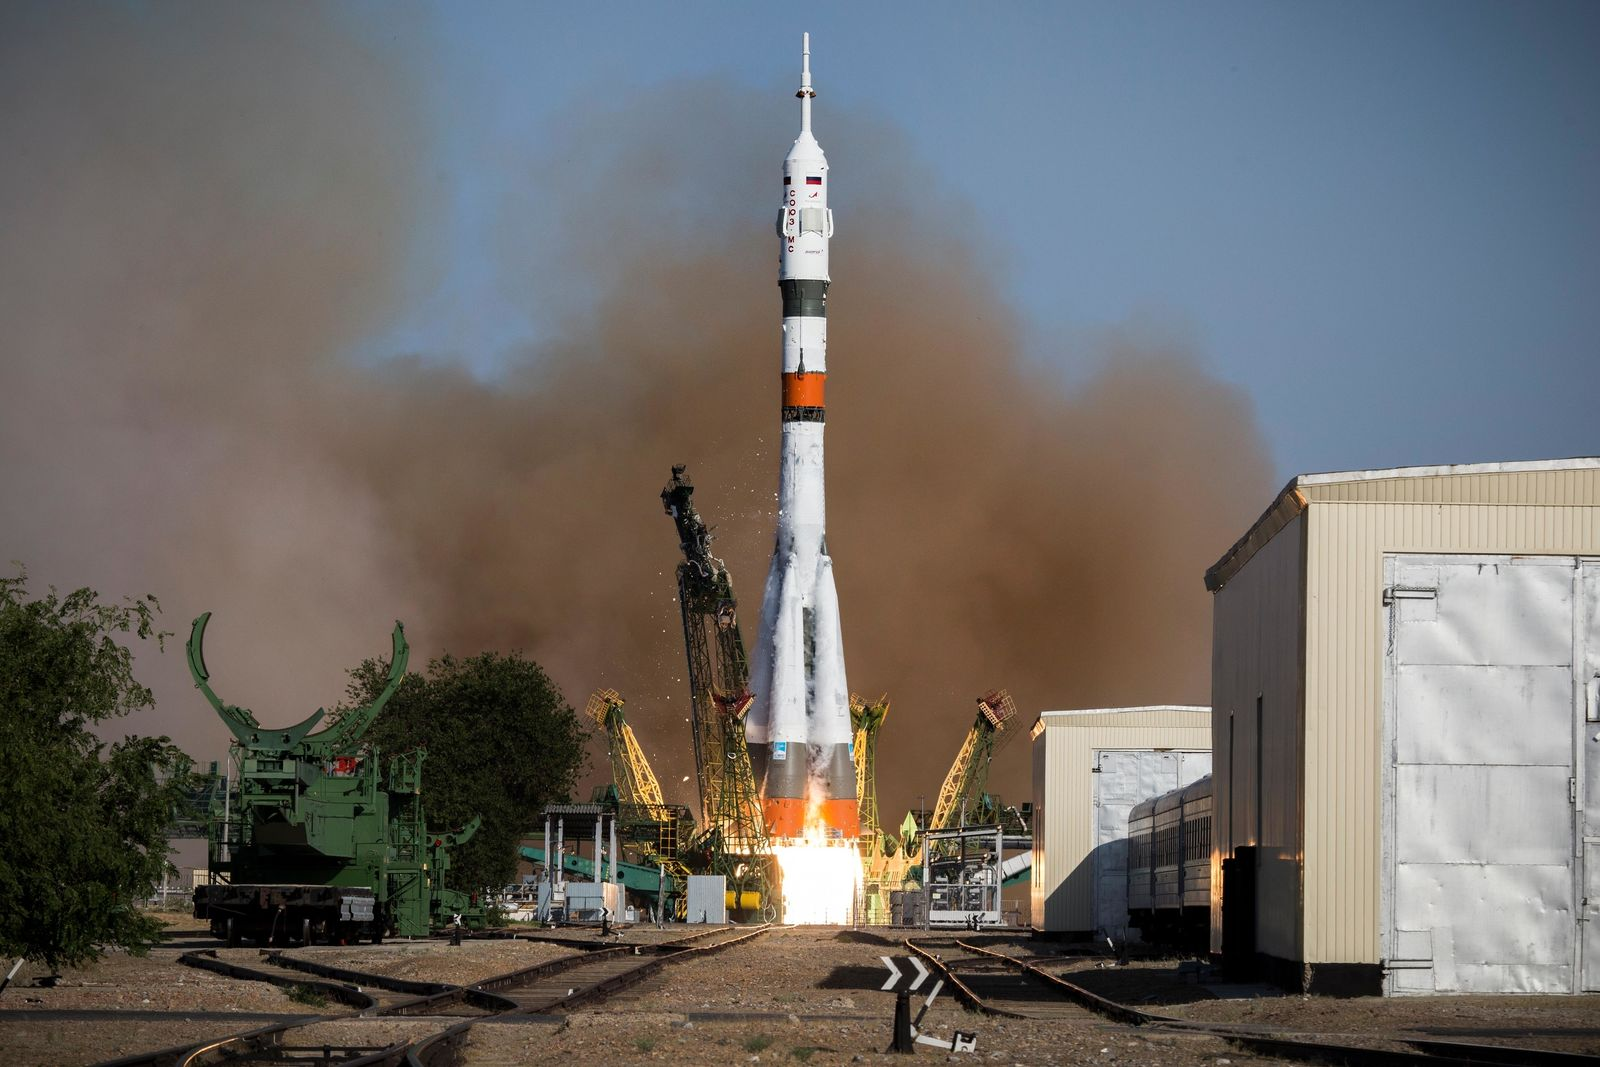 CORRECTING ROCKET NAME AND ADDING ROBOT DETAILS - In this photo taken on Thursday, Aug. 22, 2019, and distributed by Roscosmos Space Agency Press Service, a Soyuz capsule is launched by a new Soyuz 2.1a rocket from the launch pad at Russia's space facility in Baikonur, Kazakhstan.{ } (ISS). Roscosmos Space Agency Press Service photo via AP)